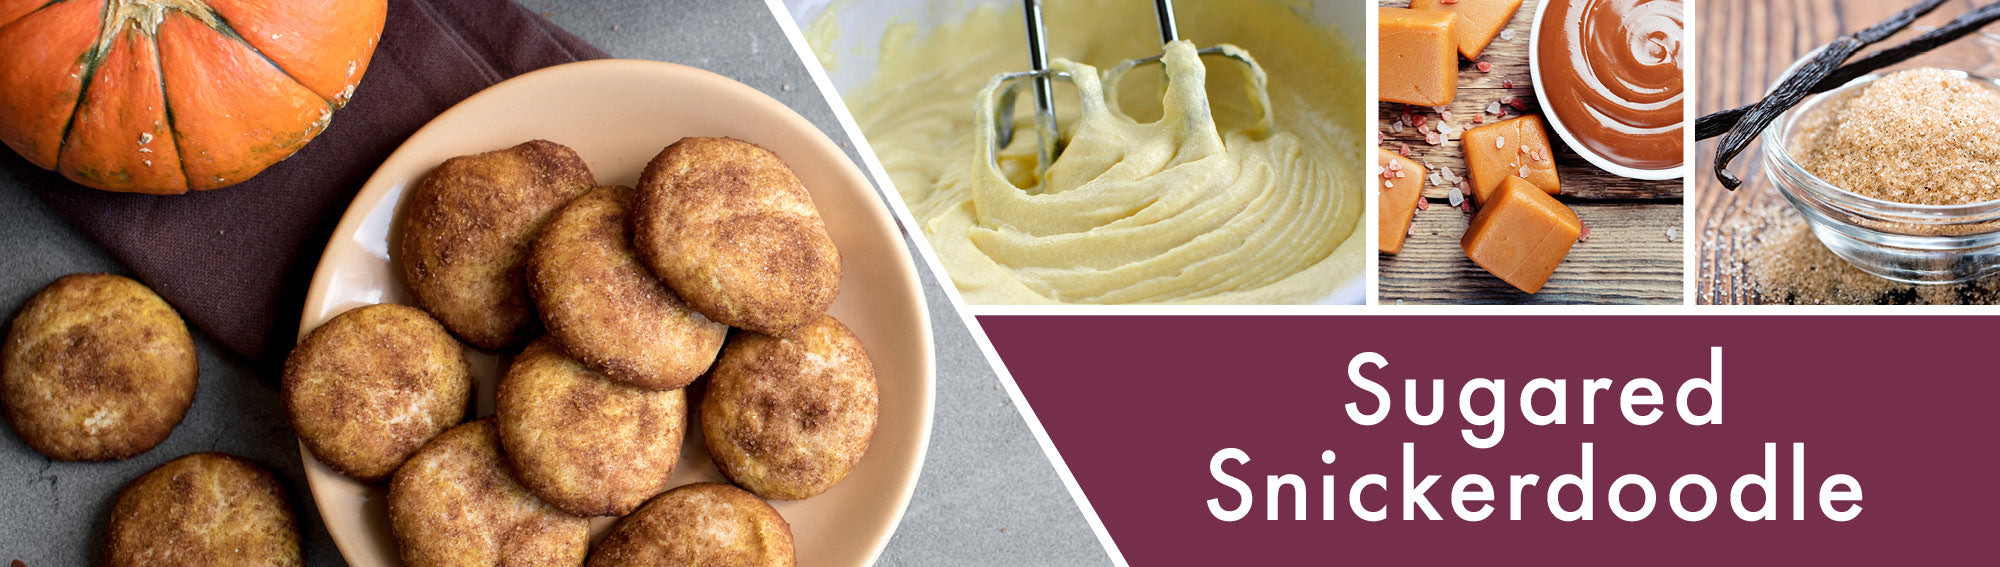 Sugared Snickerdoodle Fragrance